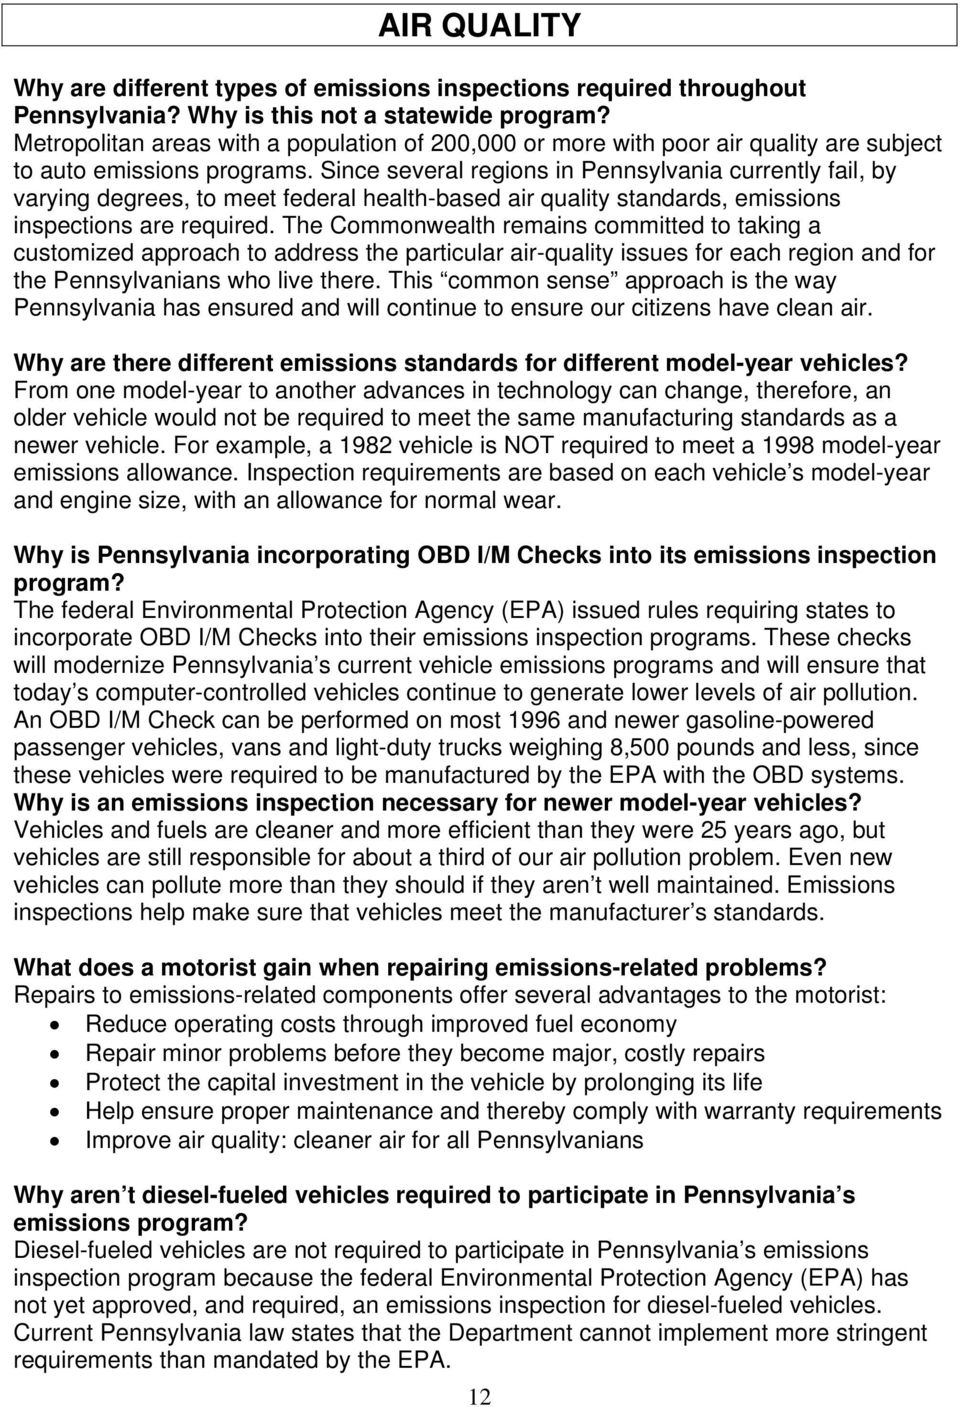 Since several regions in Pennsylvania currently fail, by varying degrees, to meet federal health-based air quality standards, emissions inspections are required.